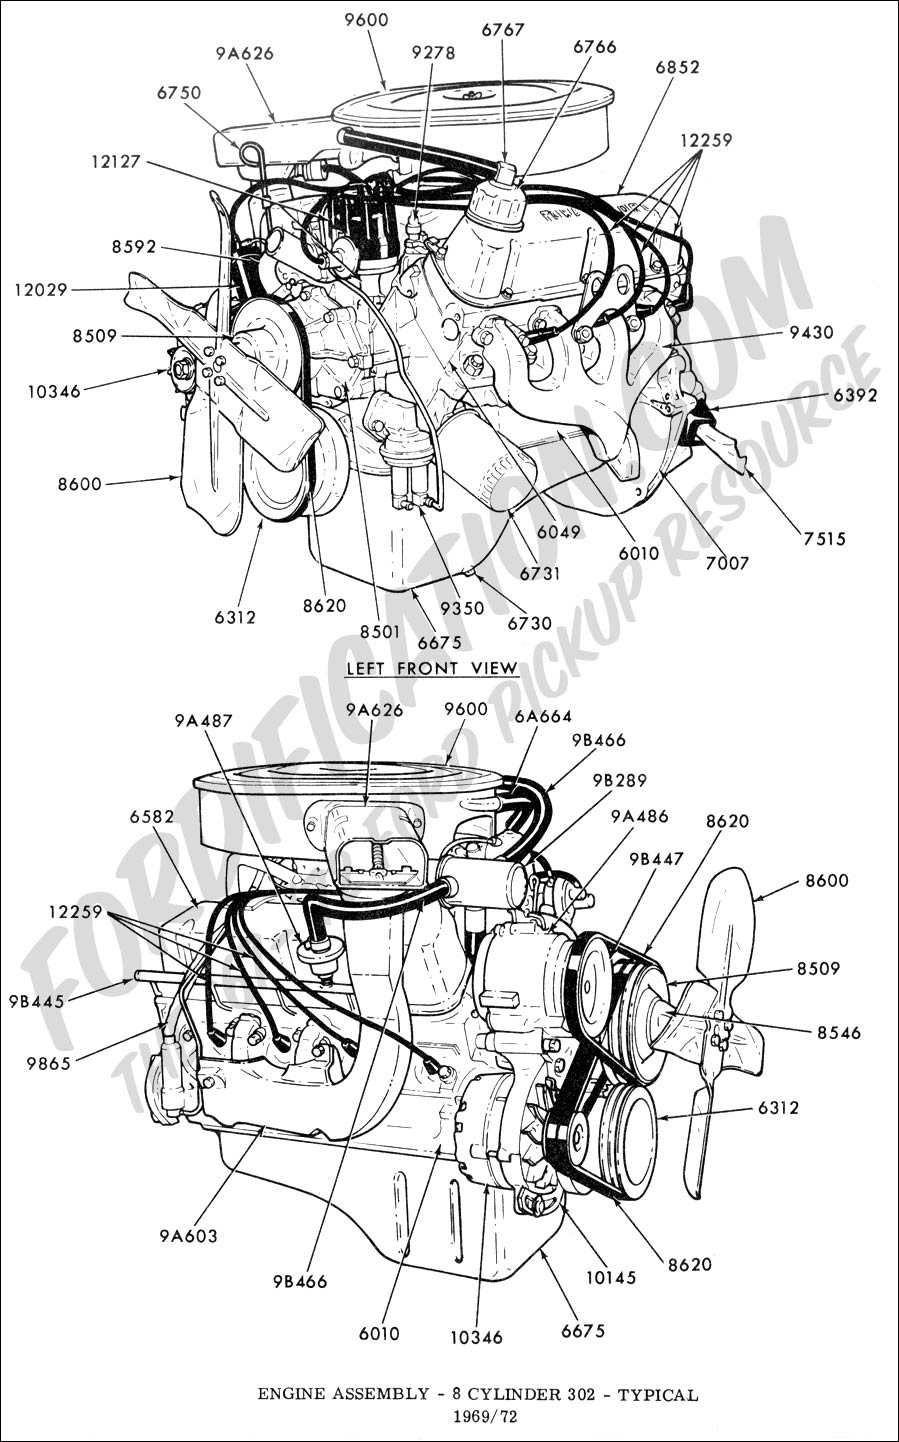 2001 Mustang V8 Fuse Diagram Auto Electrical Wiring Ls430 Related With